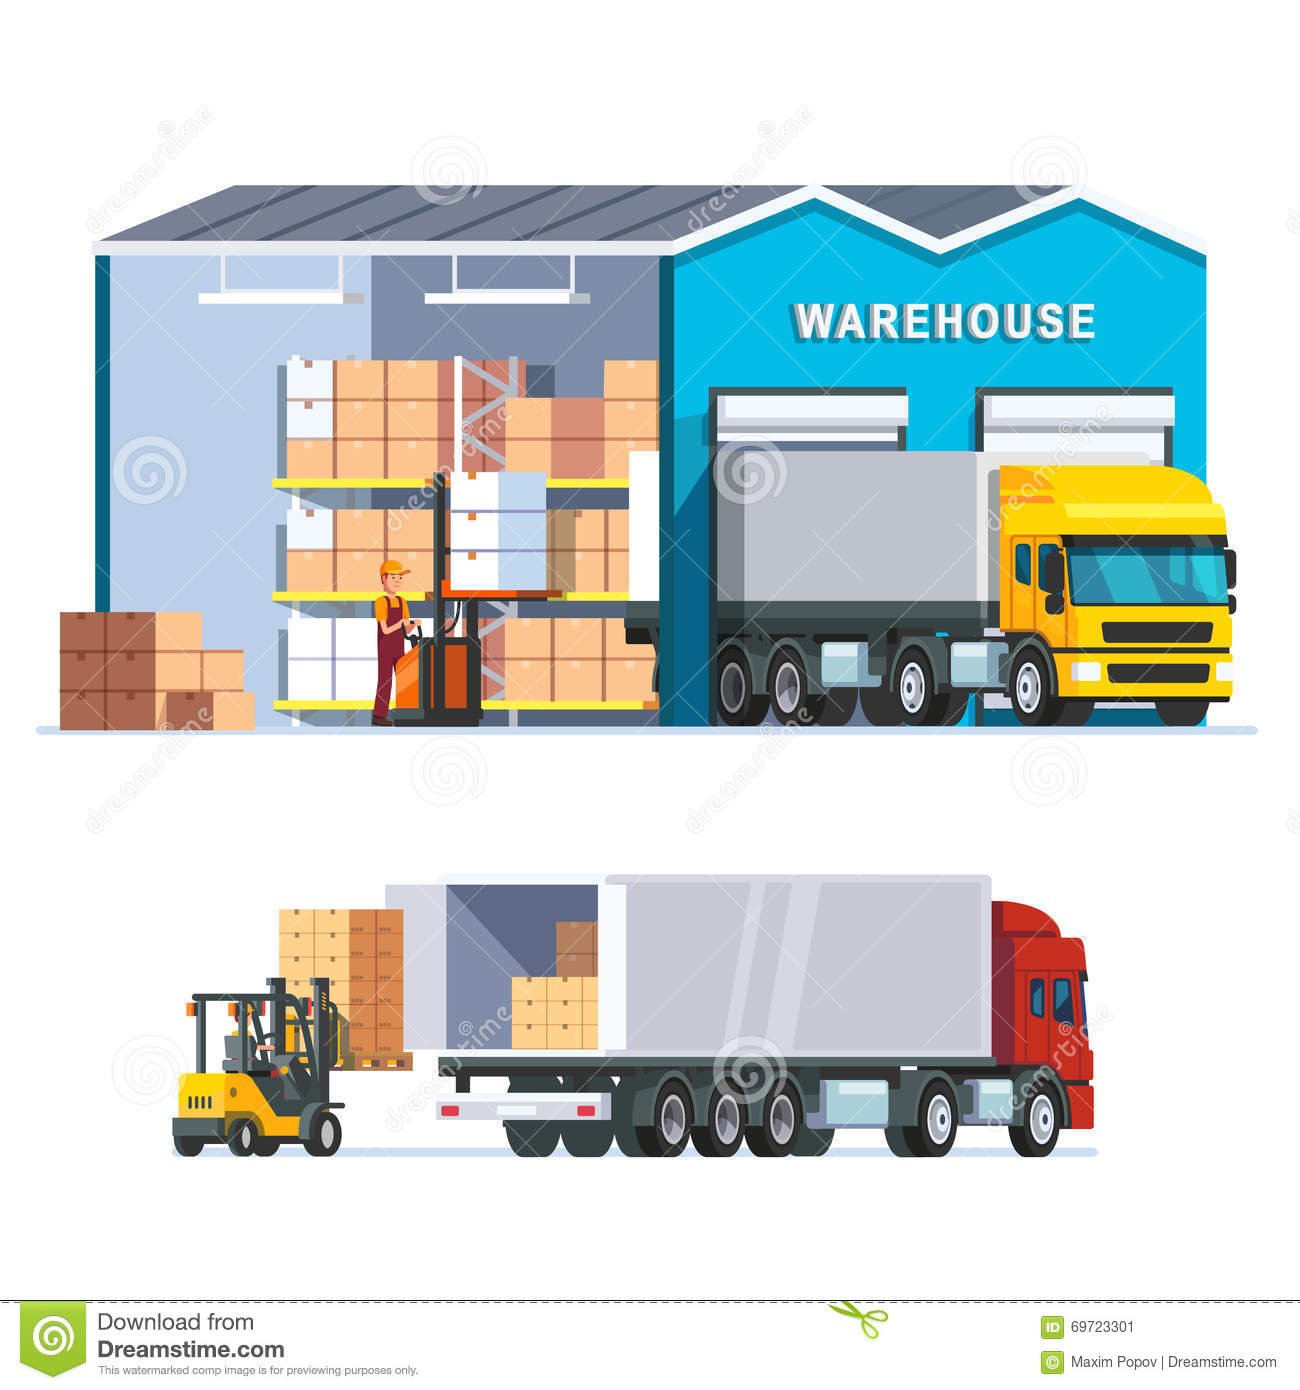 inventory and time based logistics Performance based logistics  by   time was 49 days based on the supply chain improvements over the last 15 years the  and maintaining inventory, warehousing .